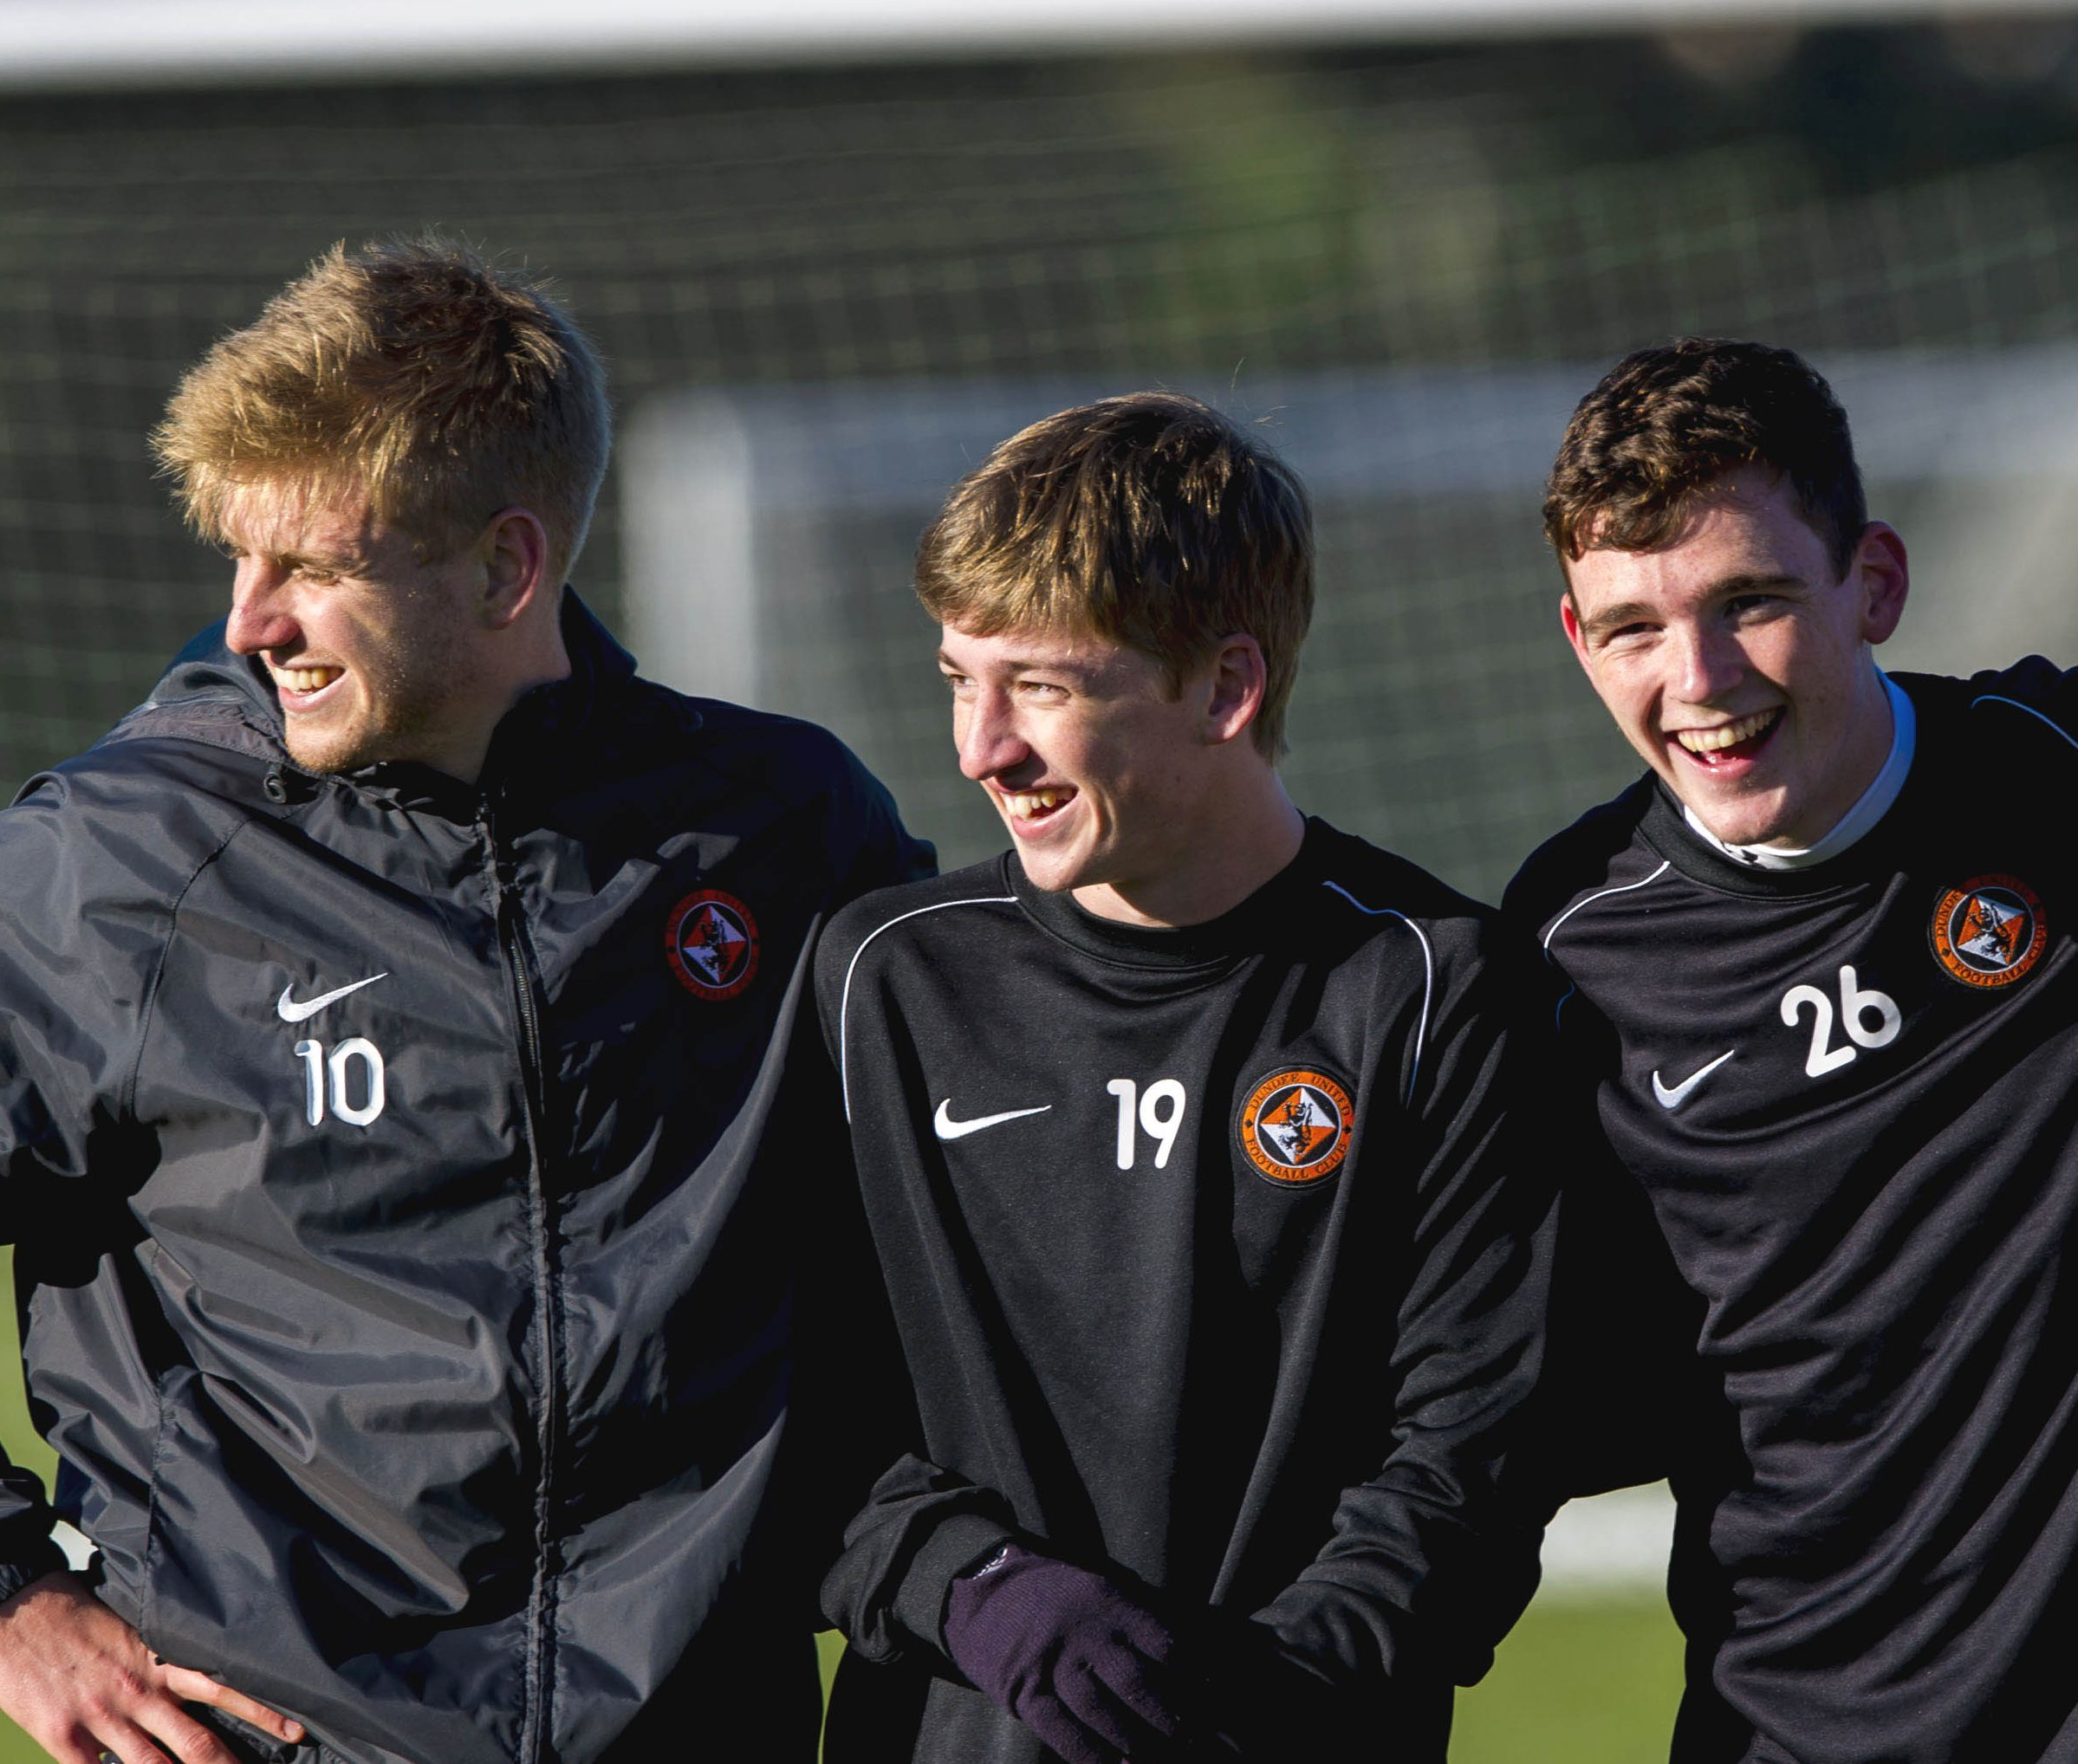 Three young players who made their names at Dundee United - Stuart Armstrong, Ryan Gauld and Andy Robertson.